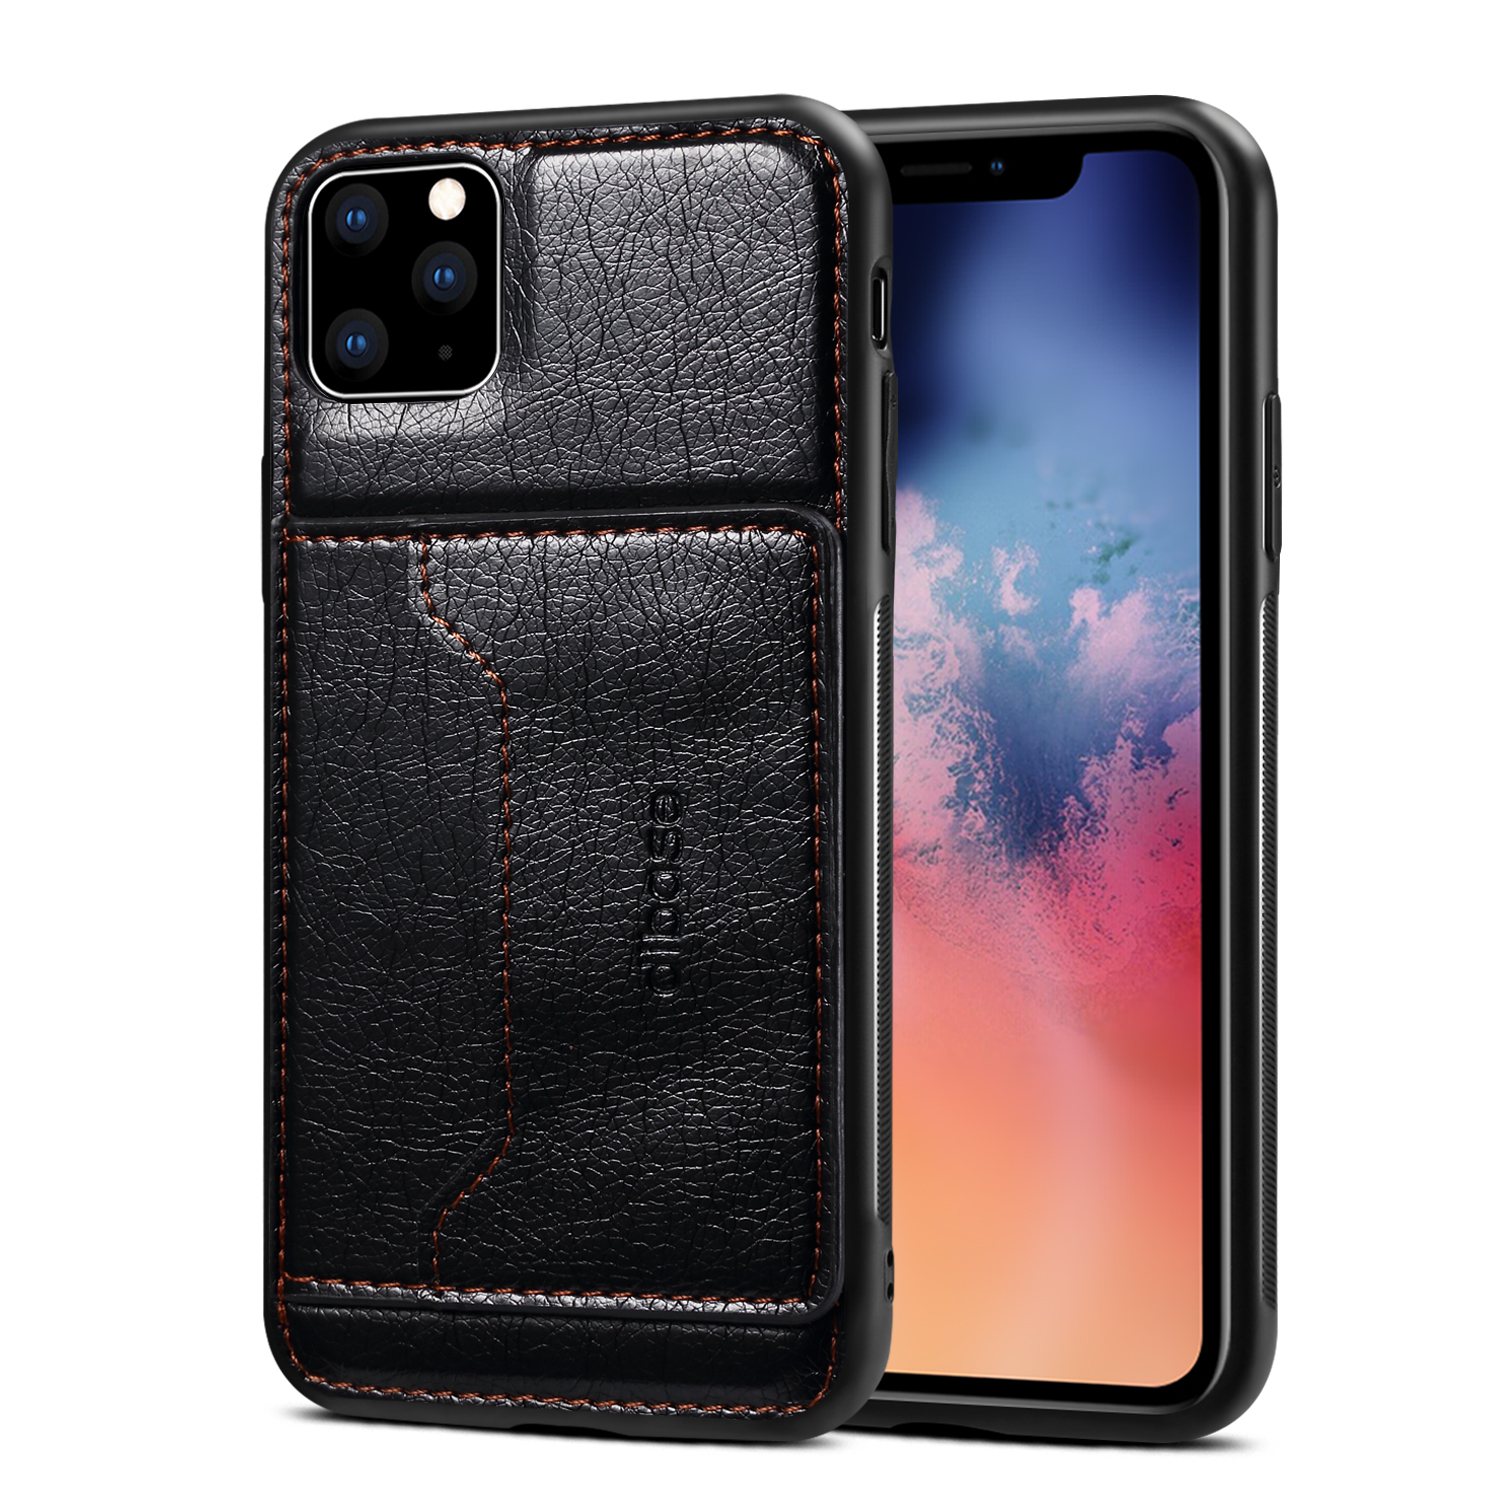 For iPhone 11/11 Pro/11 Pro Max Cellphone Smart Shell 2-in-1 Textured PU Leather Shock-Absorption Anti-Fall Card Holder Stand Function Phone Cover black